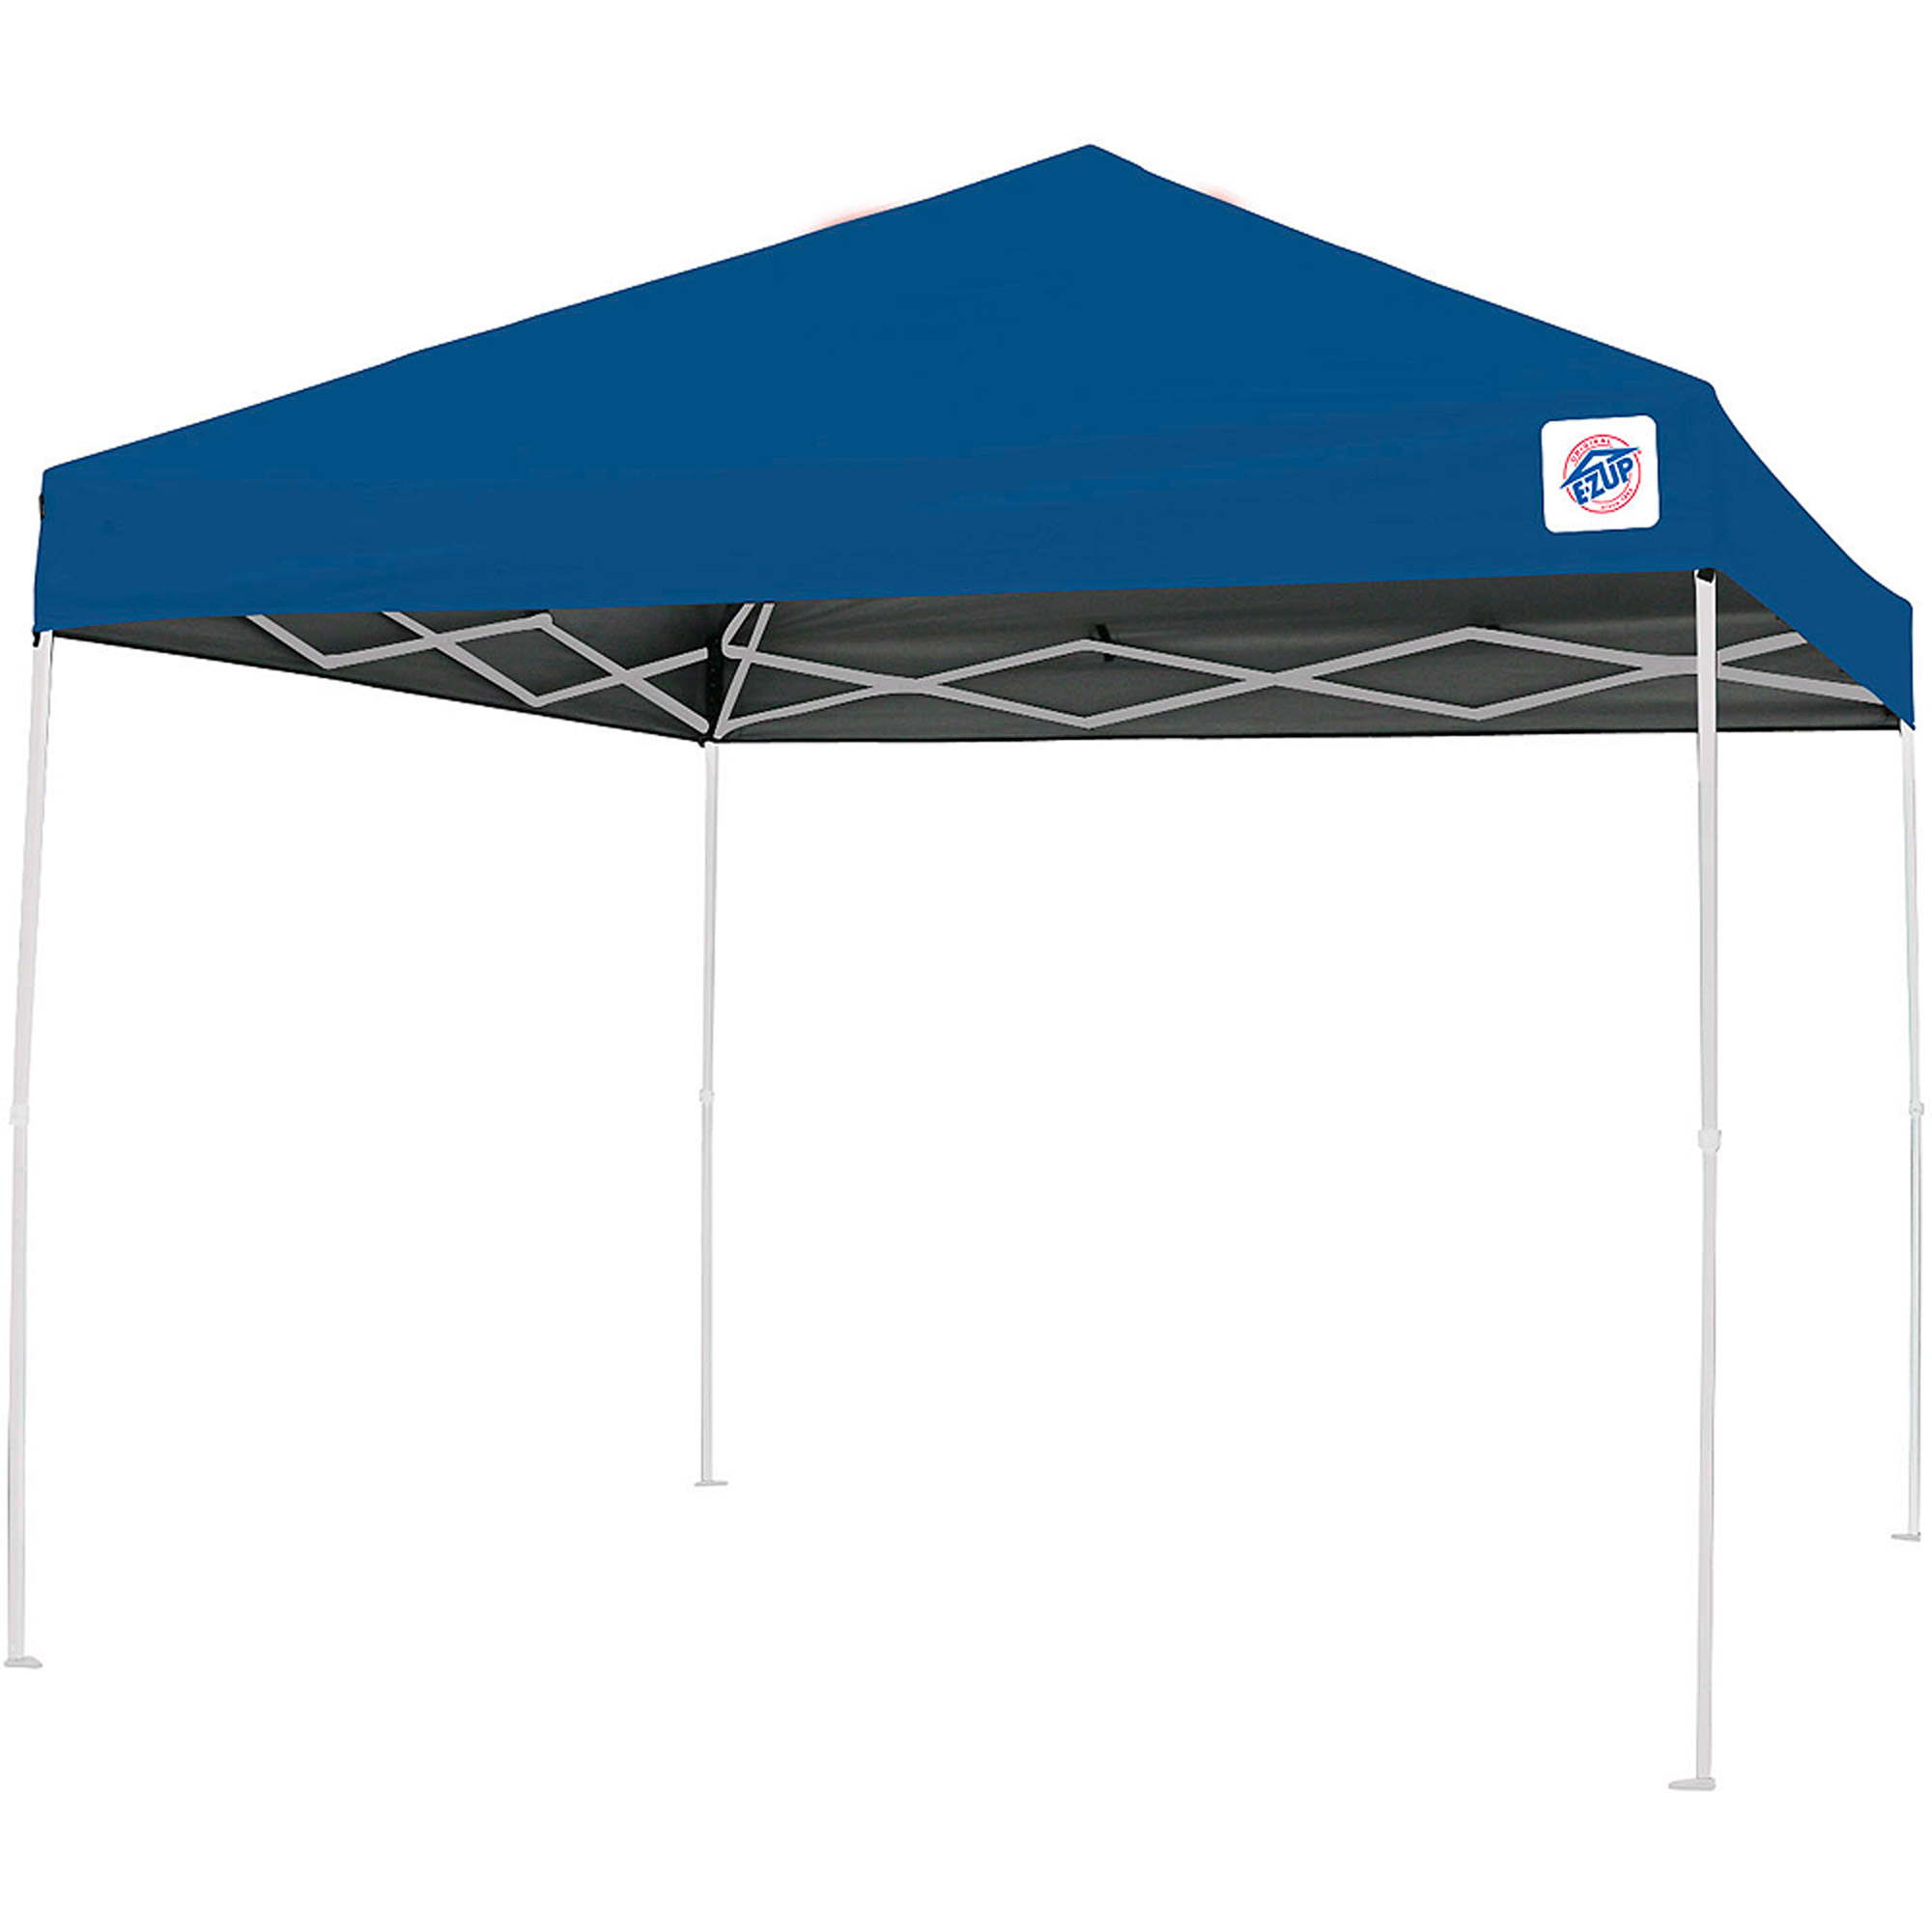 E-Z Up Envoy 10u0027x10u0027 Straight Leg Instant Canopy (100 sq. ft  sc 1 st  Walmart.com & E-Z Up Envoy 10u0027x10u0027 Straight Leg Instant Canopy (100 sq. ft ...